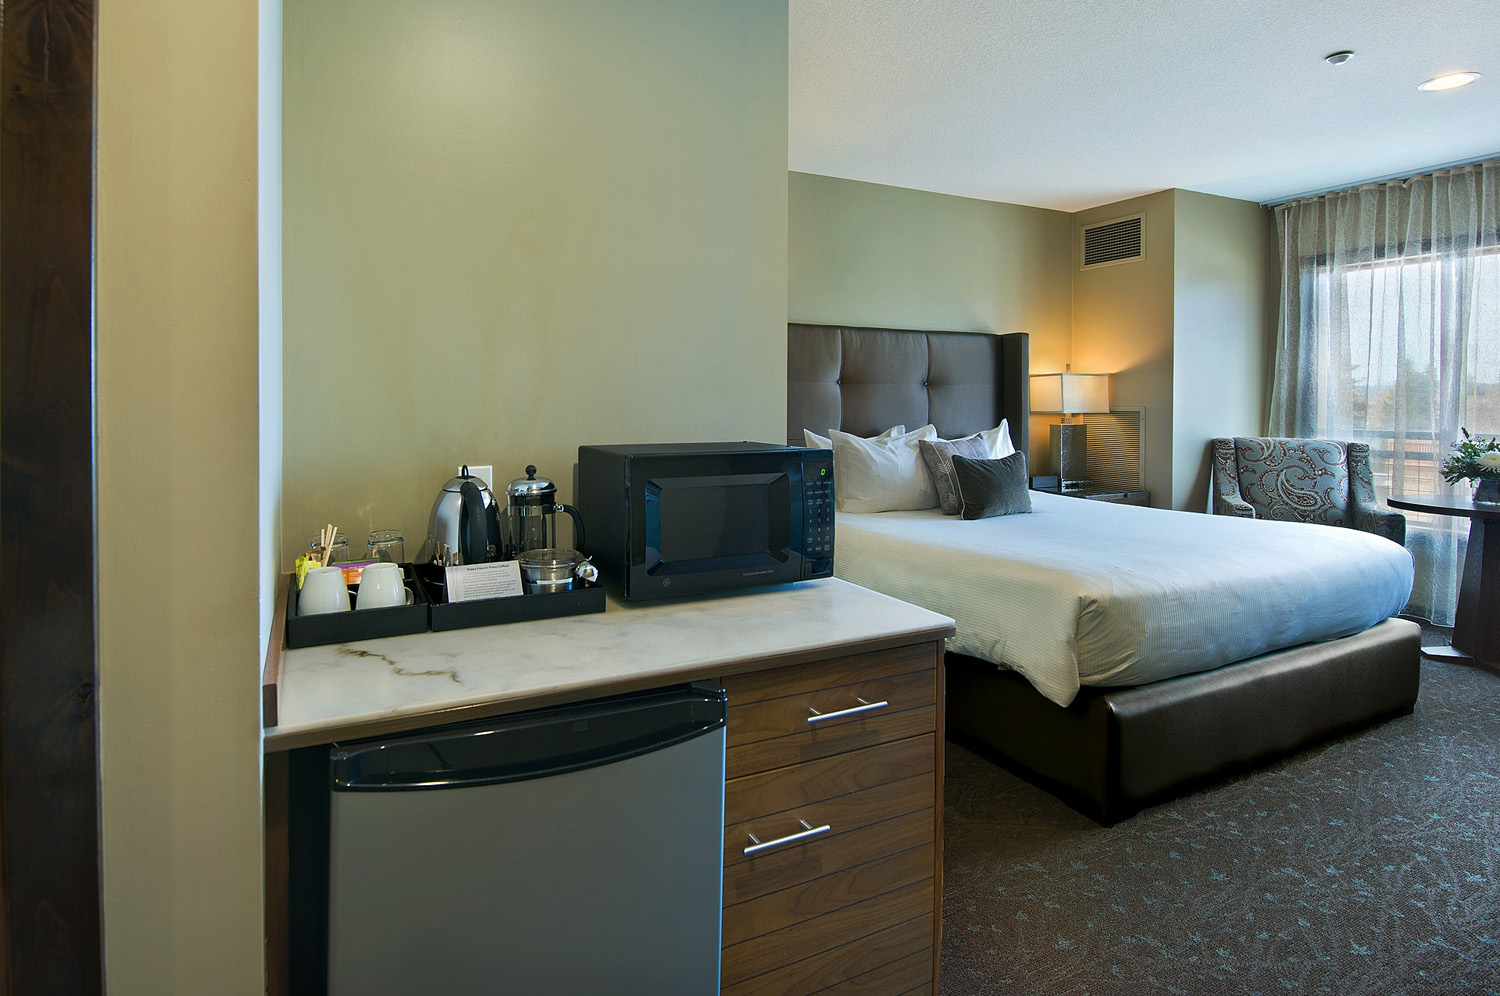 Luxurious Handicap Accessible Rooms in Bend Oregon | Oxford Hotel Bend